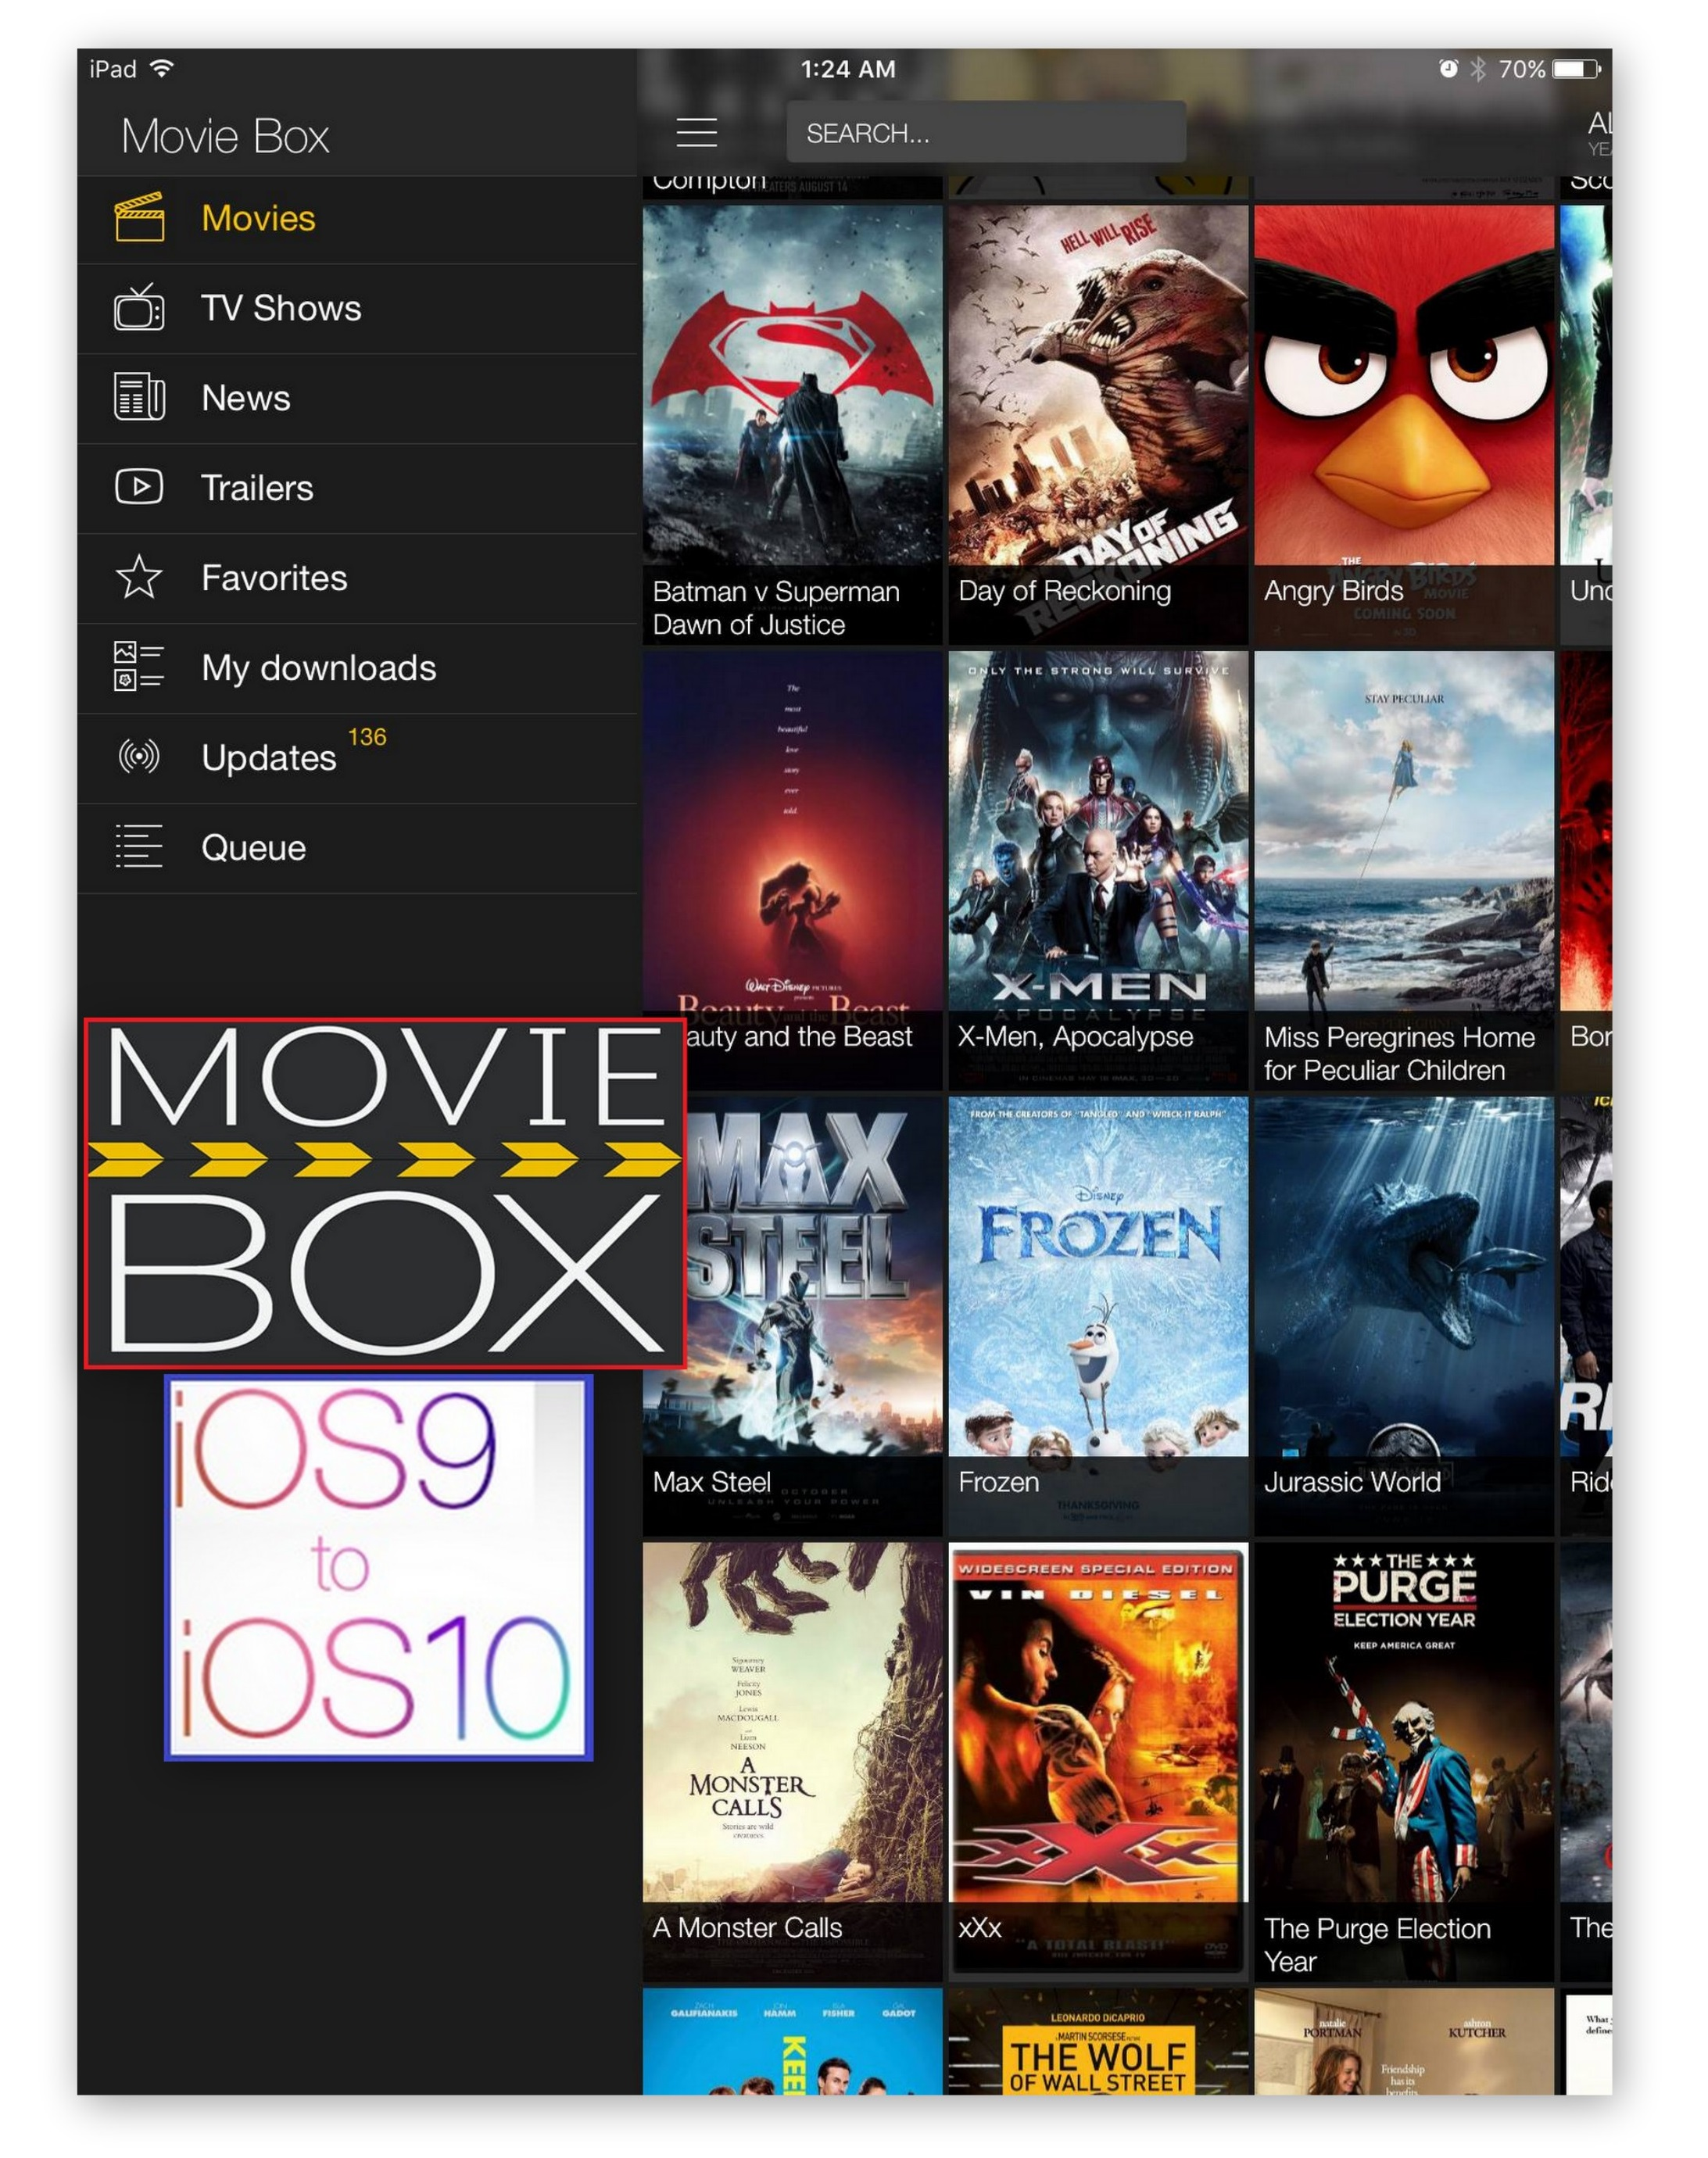 MovieBox for iOS 9 - iOS 10